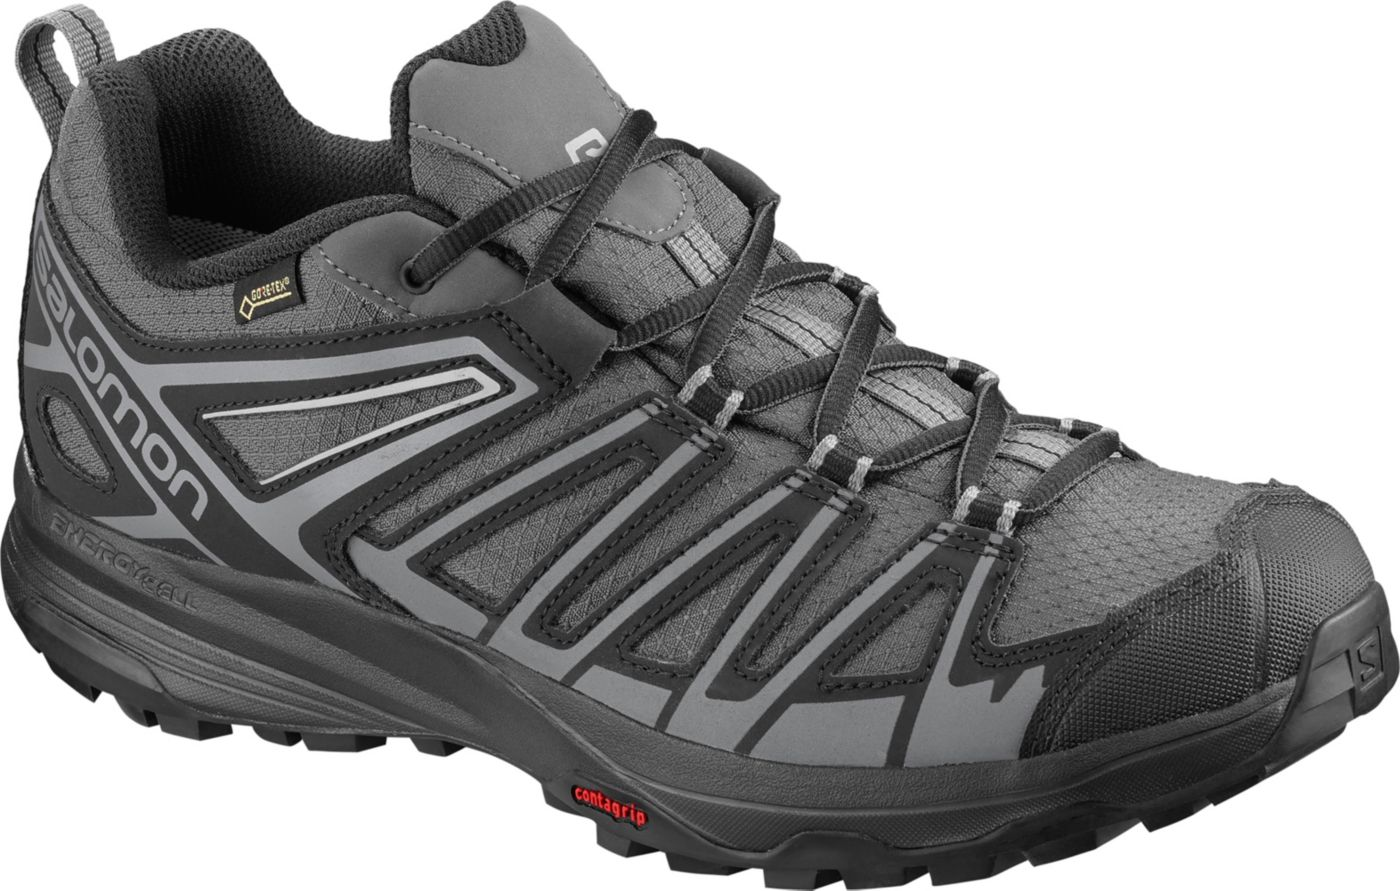 Salomon Men's X Crest GTX Waterproof Hiking Shoes